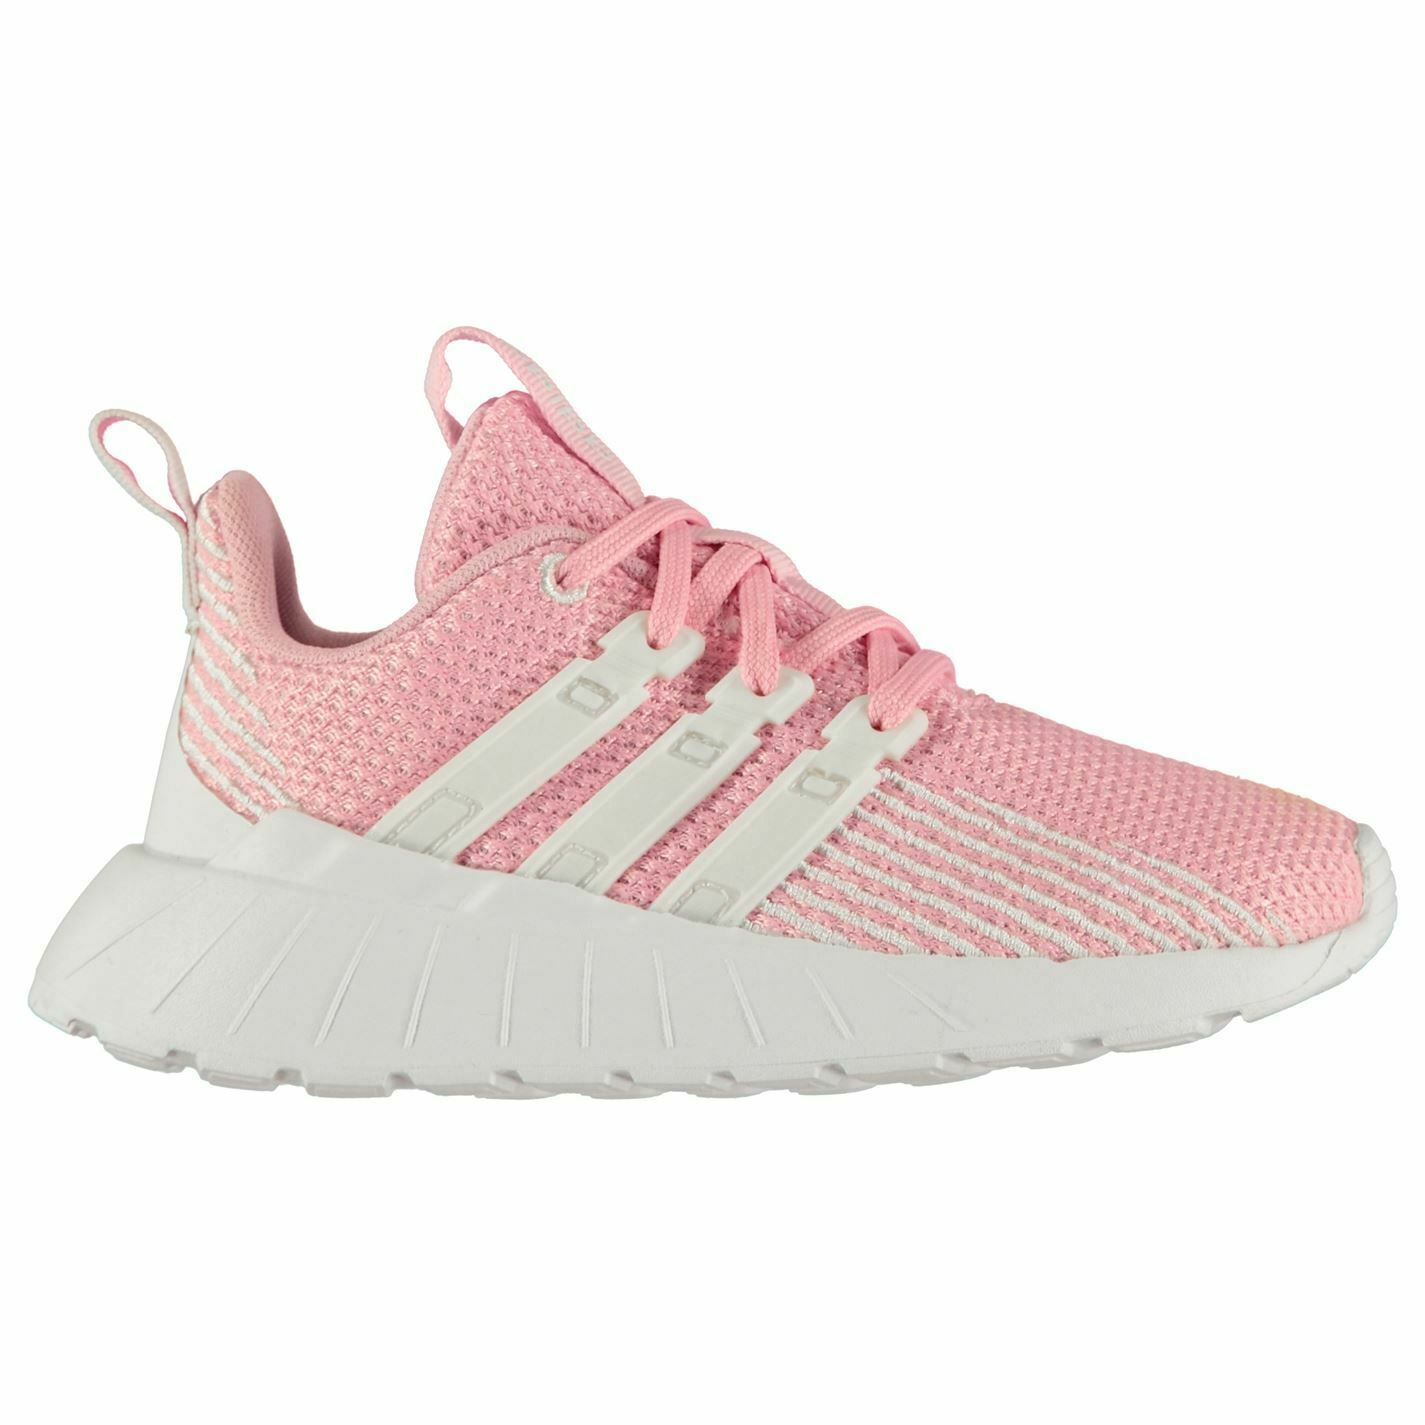 Adidas Questar Flow K Girls Sneakers Runners Laces Fastened Ventilated Mesh